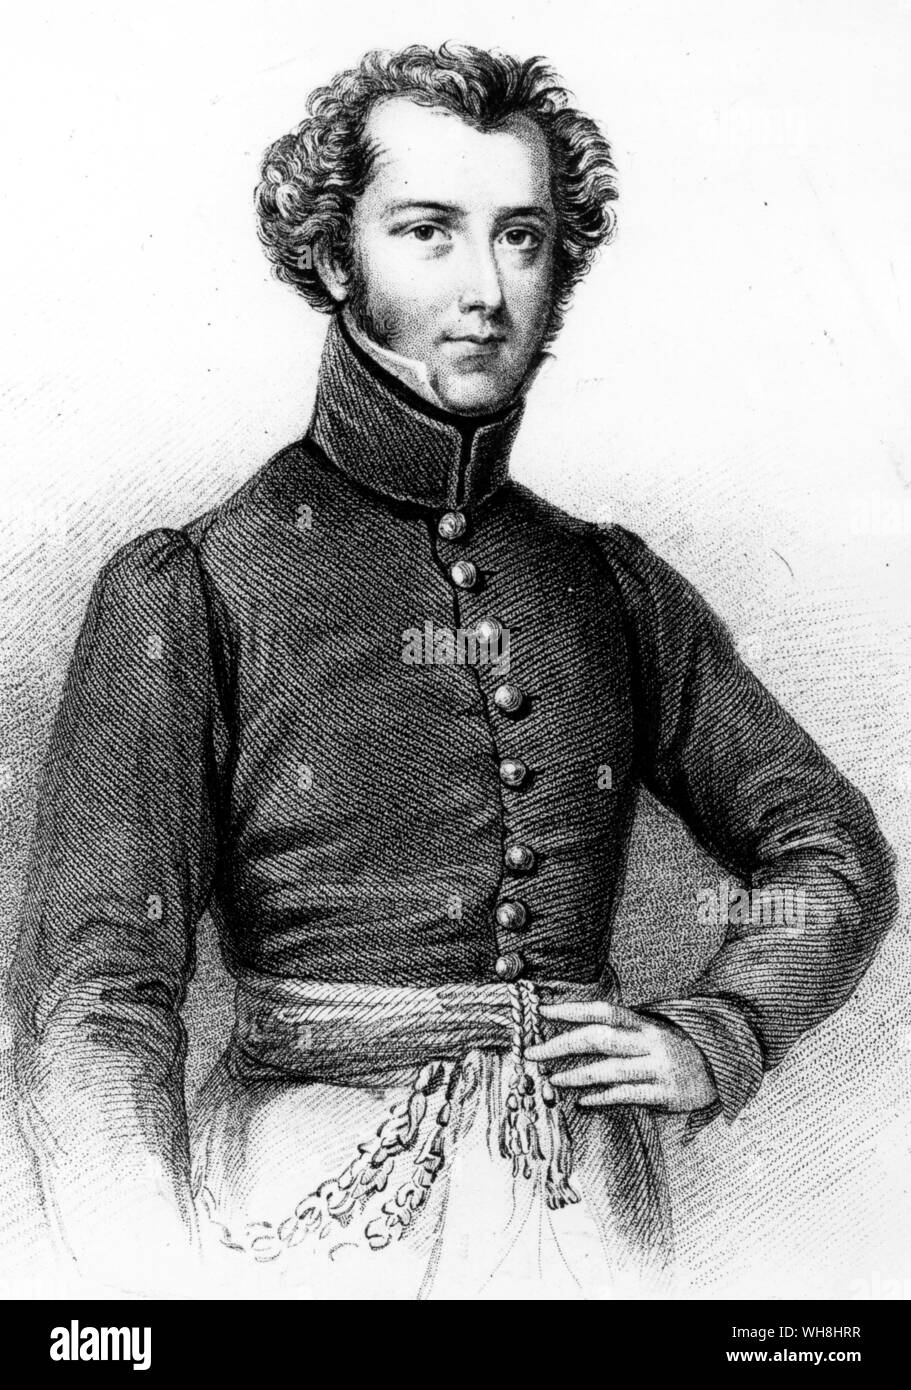 Alexander Gordon Laing (1793-1826), Scottish explorer and the first European to reach Timbuktu. Engraving by S. Freeman. 'It was felt in some conservative military circles that Major Gordon Laing was a clever but somewhat conceited officer, and probably there was feeling of mild relief when he applied to lead a new expedition into the Sahara.' The African Adventure - A History of Africa's Explorers by Timothy Severin, page 124. Stock Photo